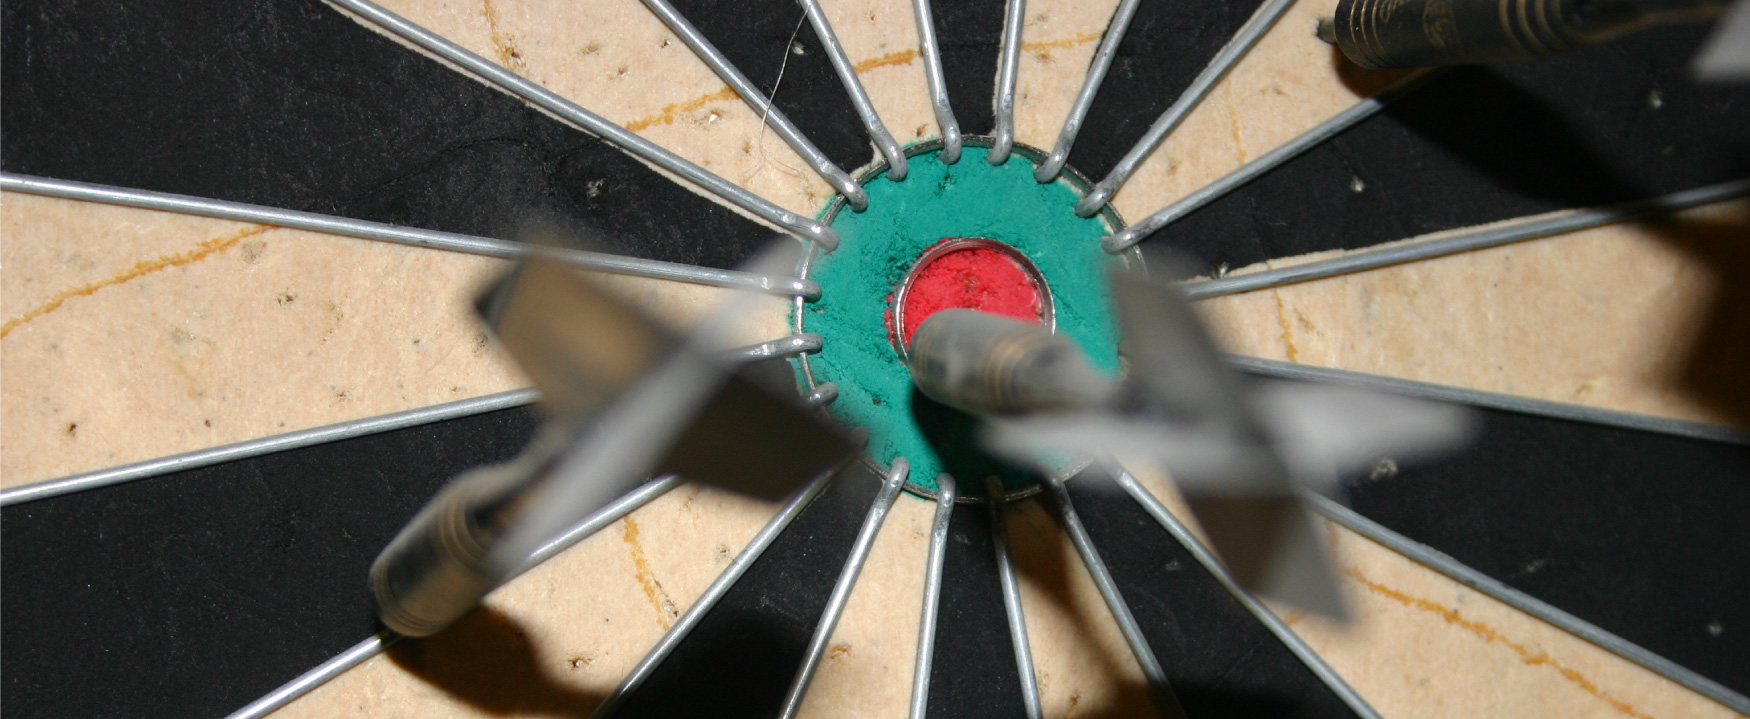 A photograph shows a dart board with a few darts stuck to the board, on is sticking into the bullseye.